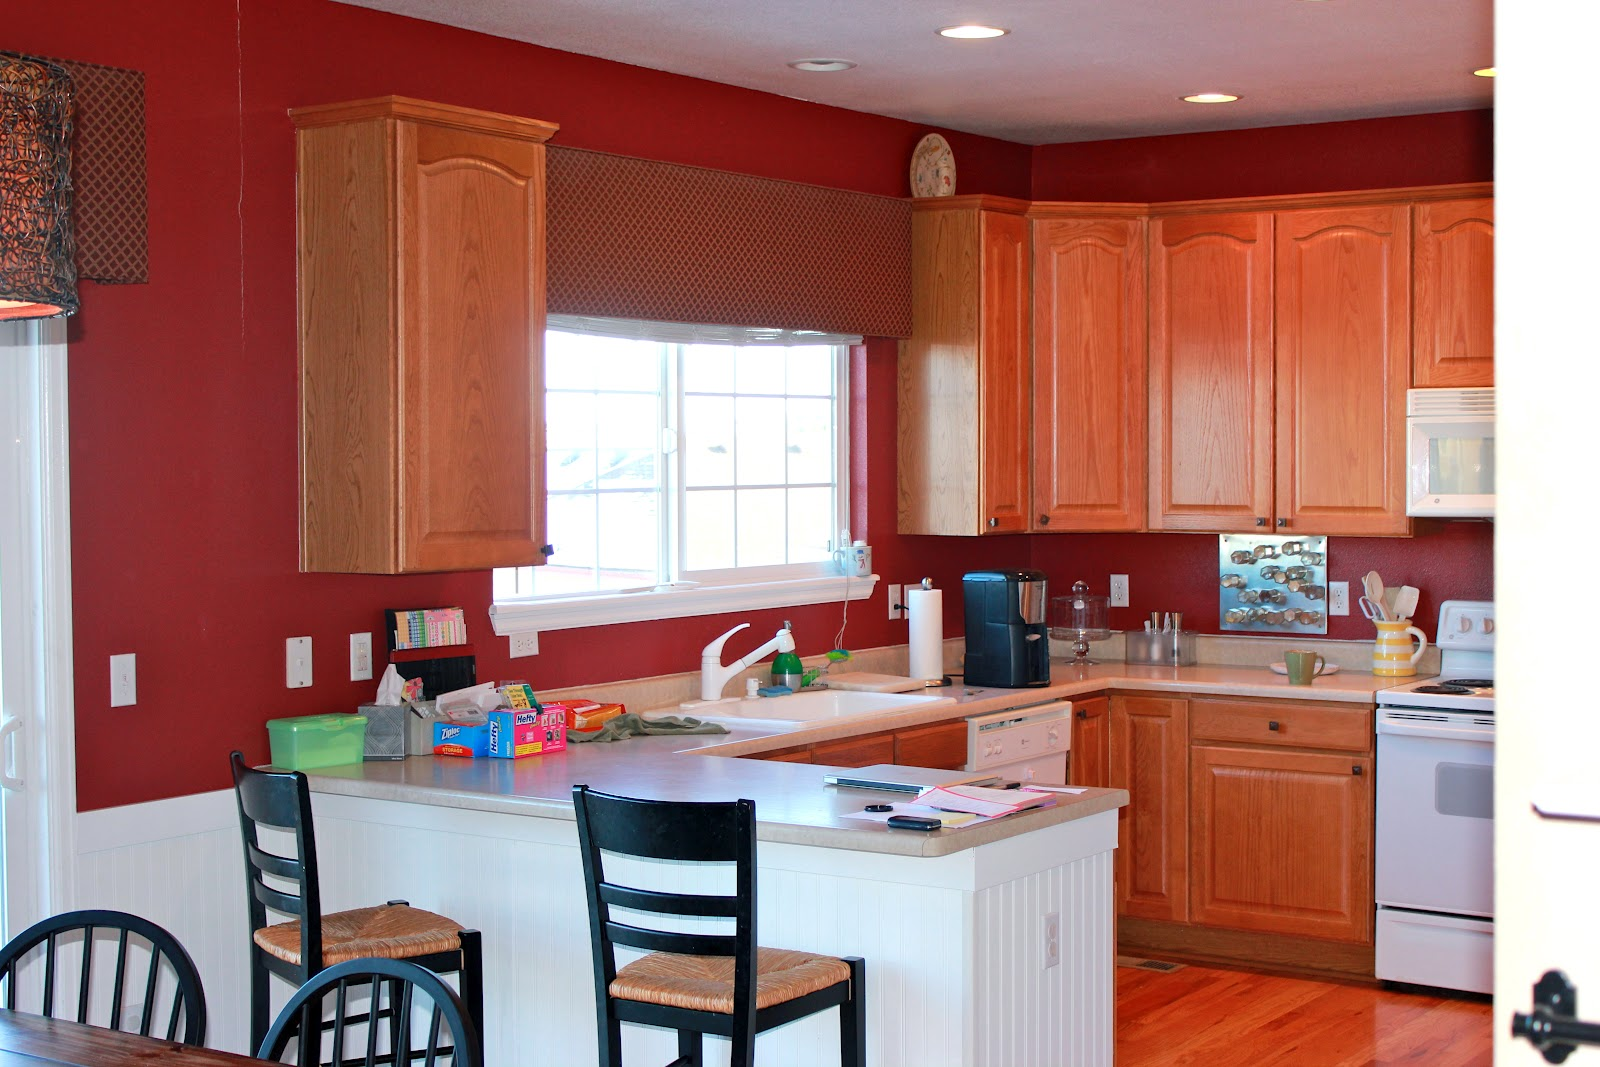 Achieving Creative Order Painted Kitchen Cabinets and Bead Board